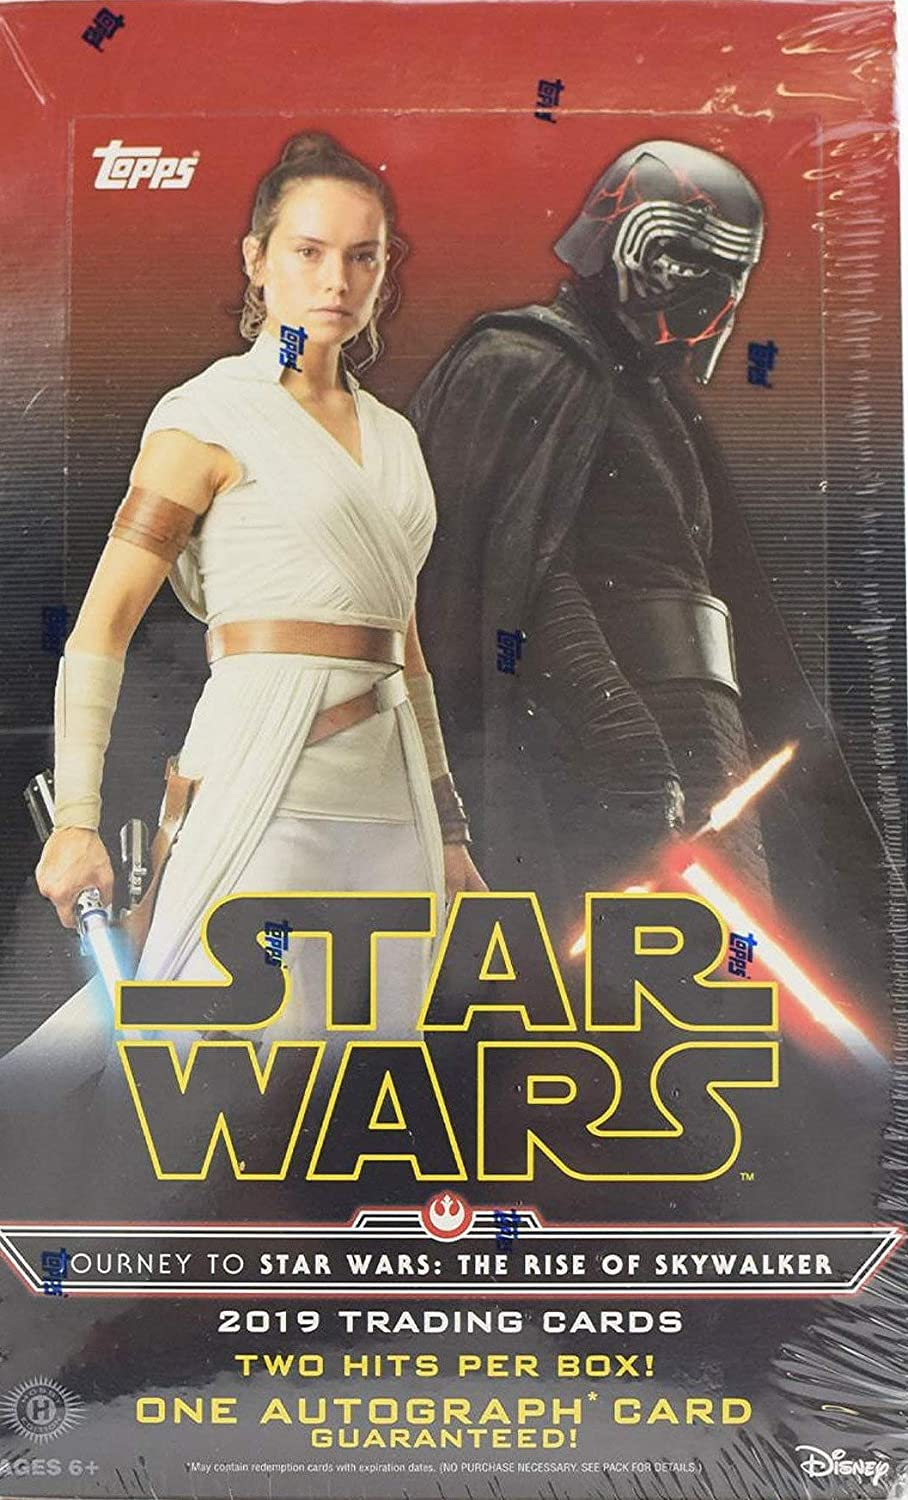 Amazon Com 2019 Topps Star Wars Journey To Star Wars The Rise Of Skywalker Tracing Card Hobby Box 24 Pks Bx Collectibles Fine Art